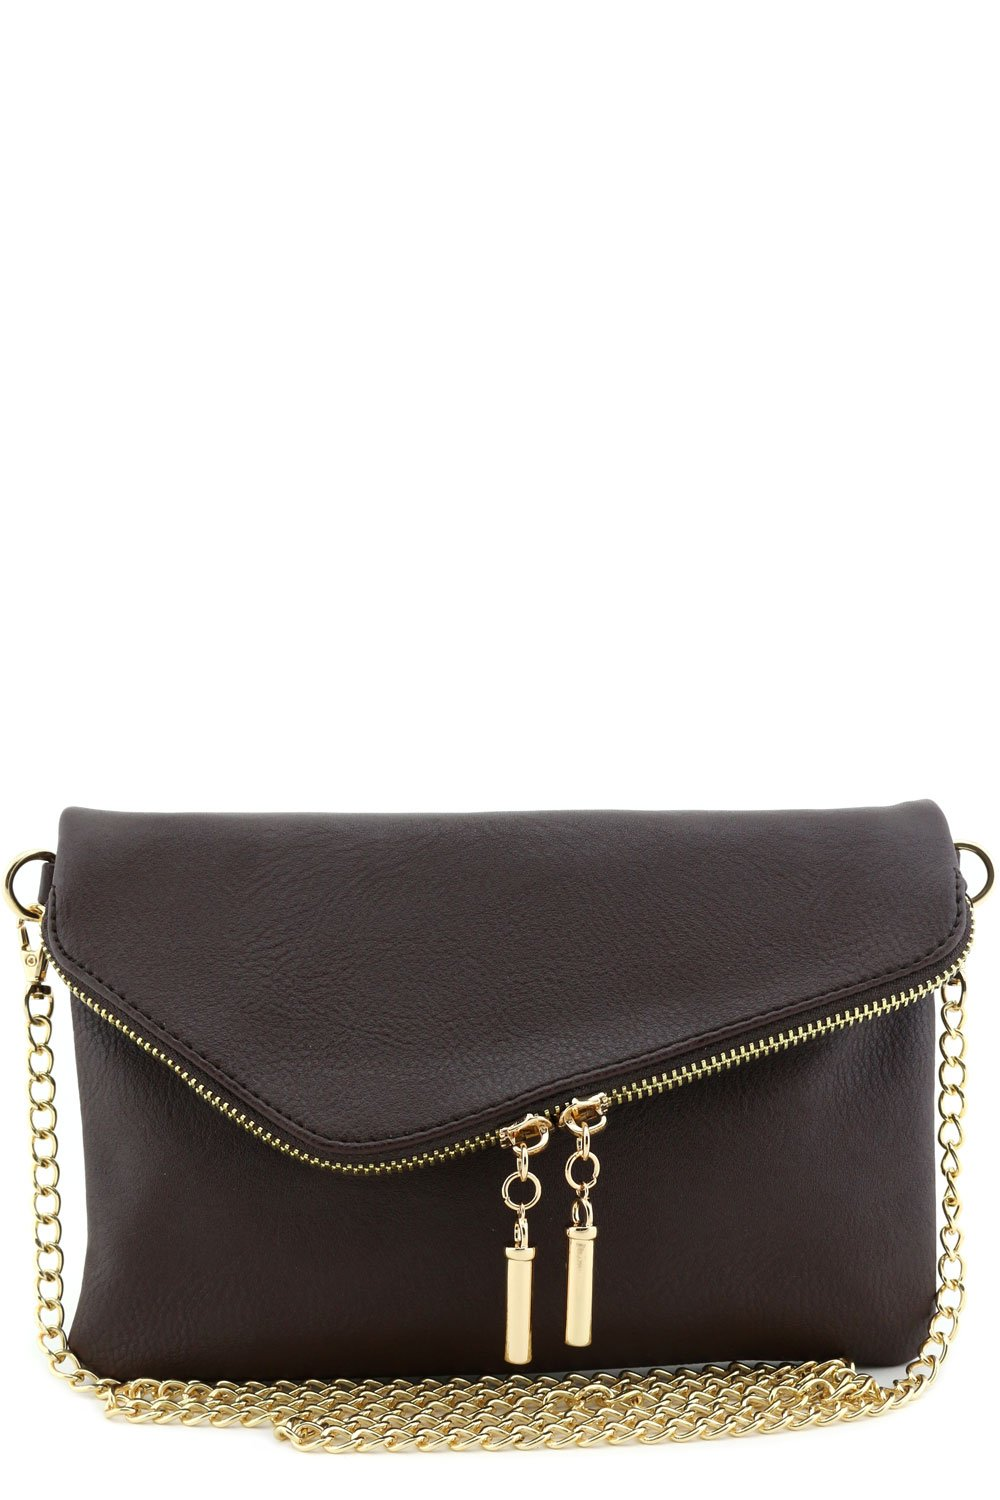 Envelope Wristlet Clutch Crossbody Bag with Chain Strap Brown